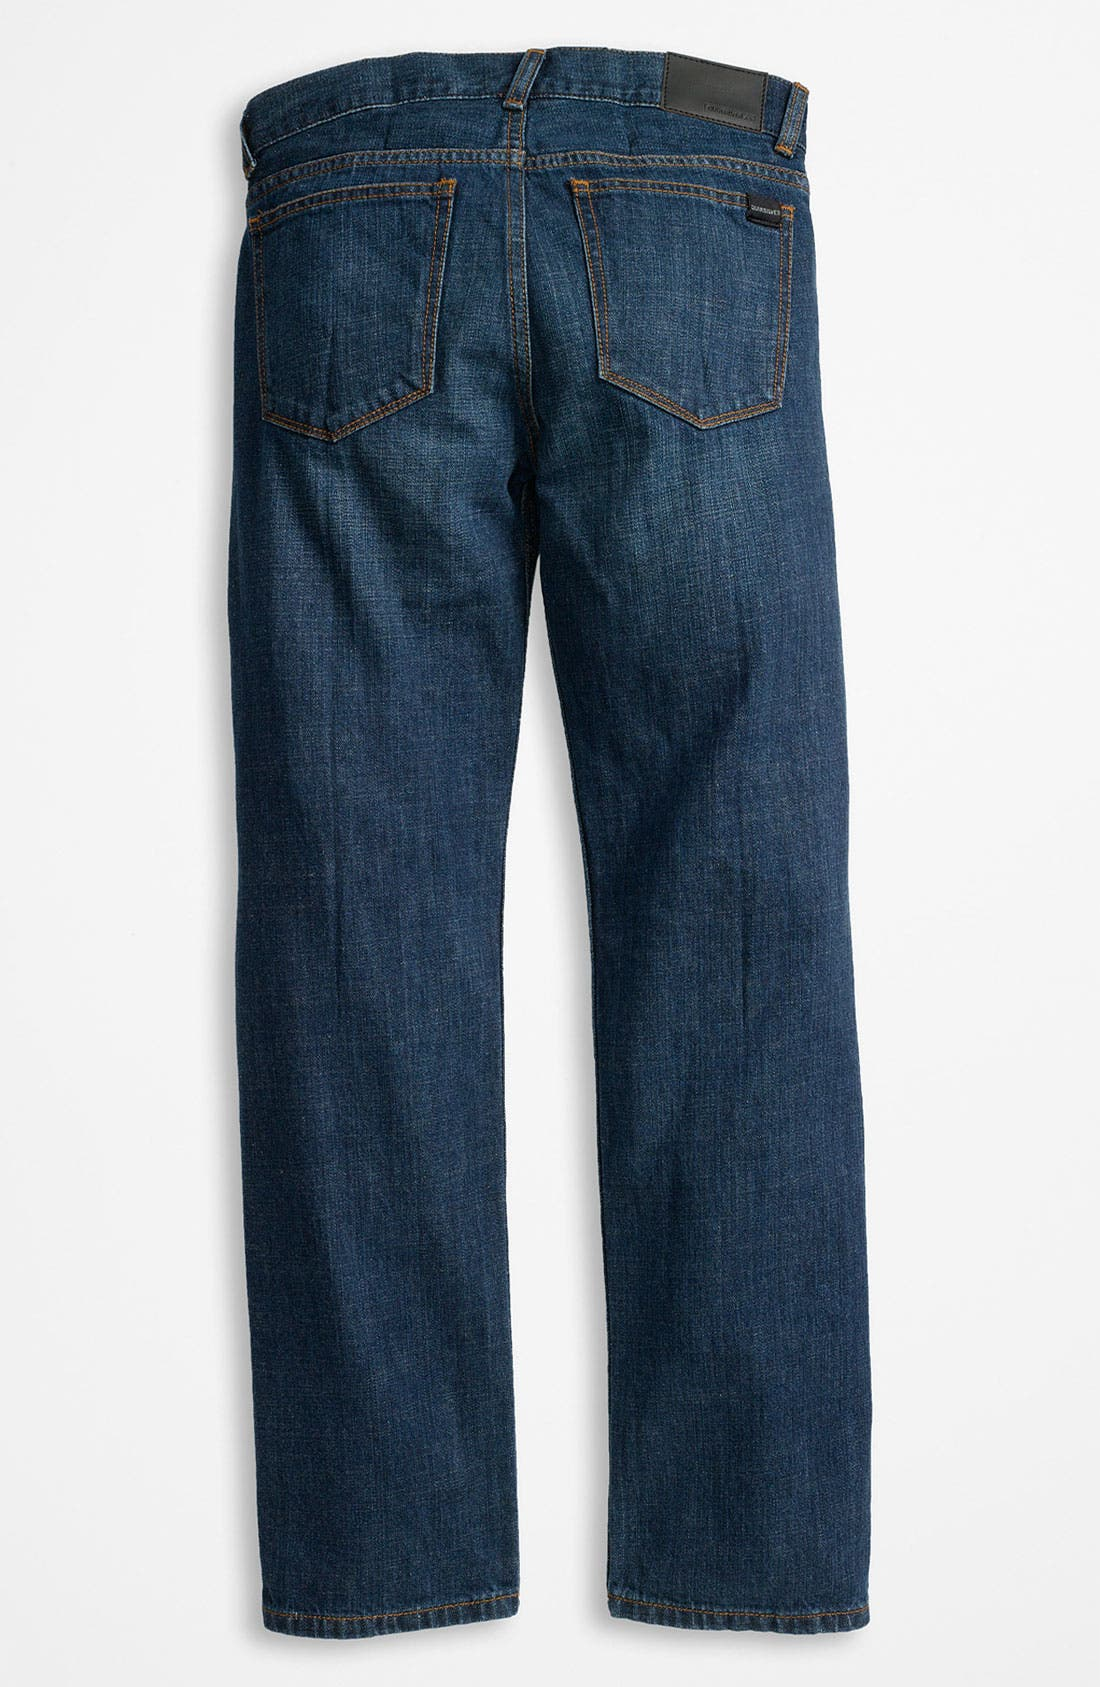 Main Image - Quiksilver 'Revolver' Jeans (Big Boys)